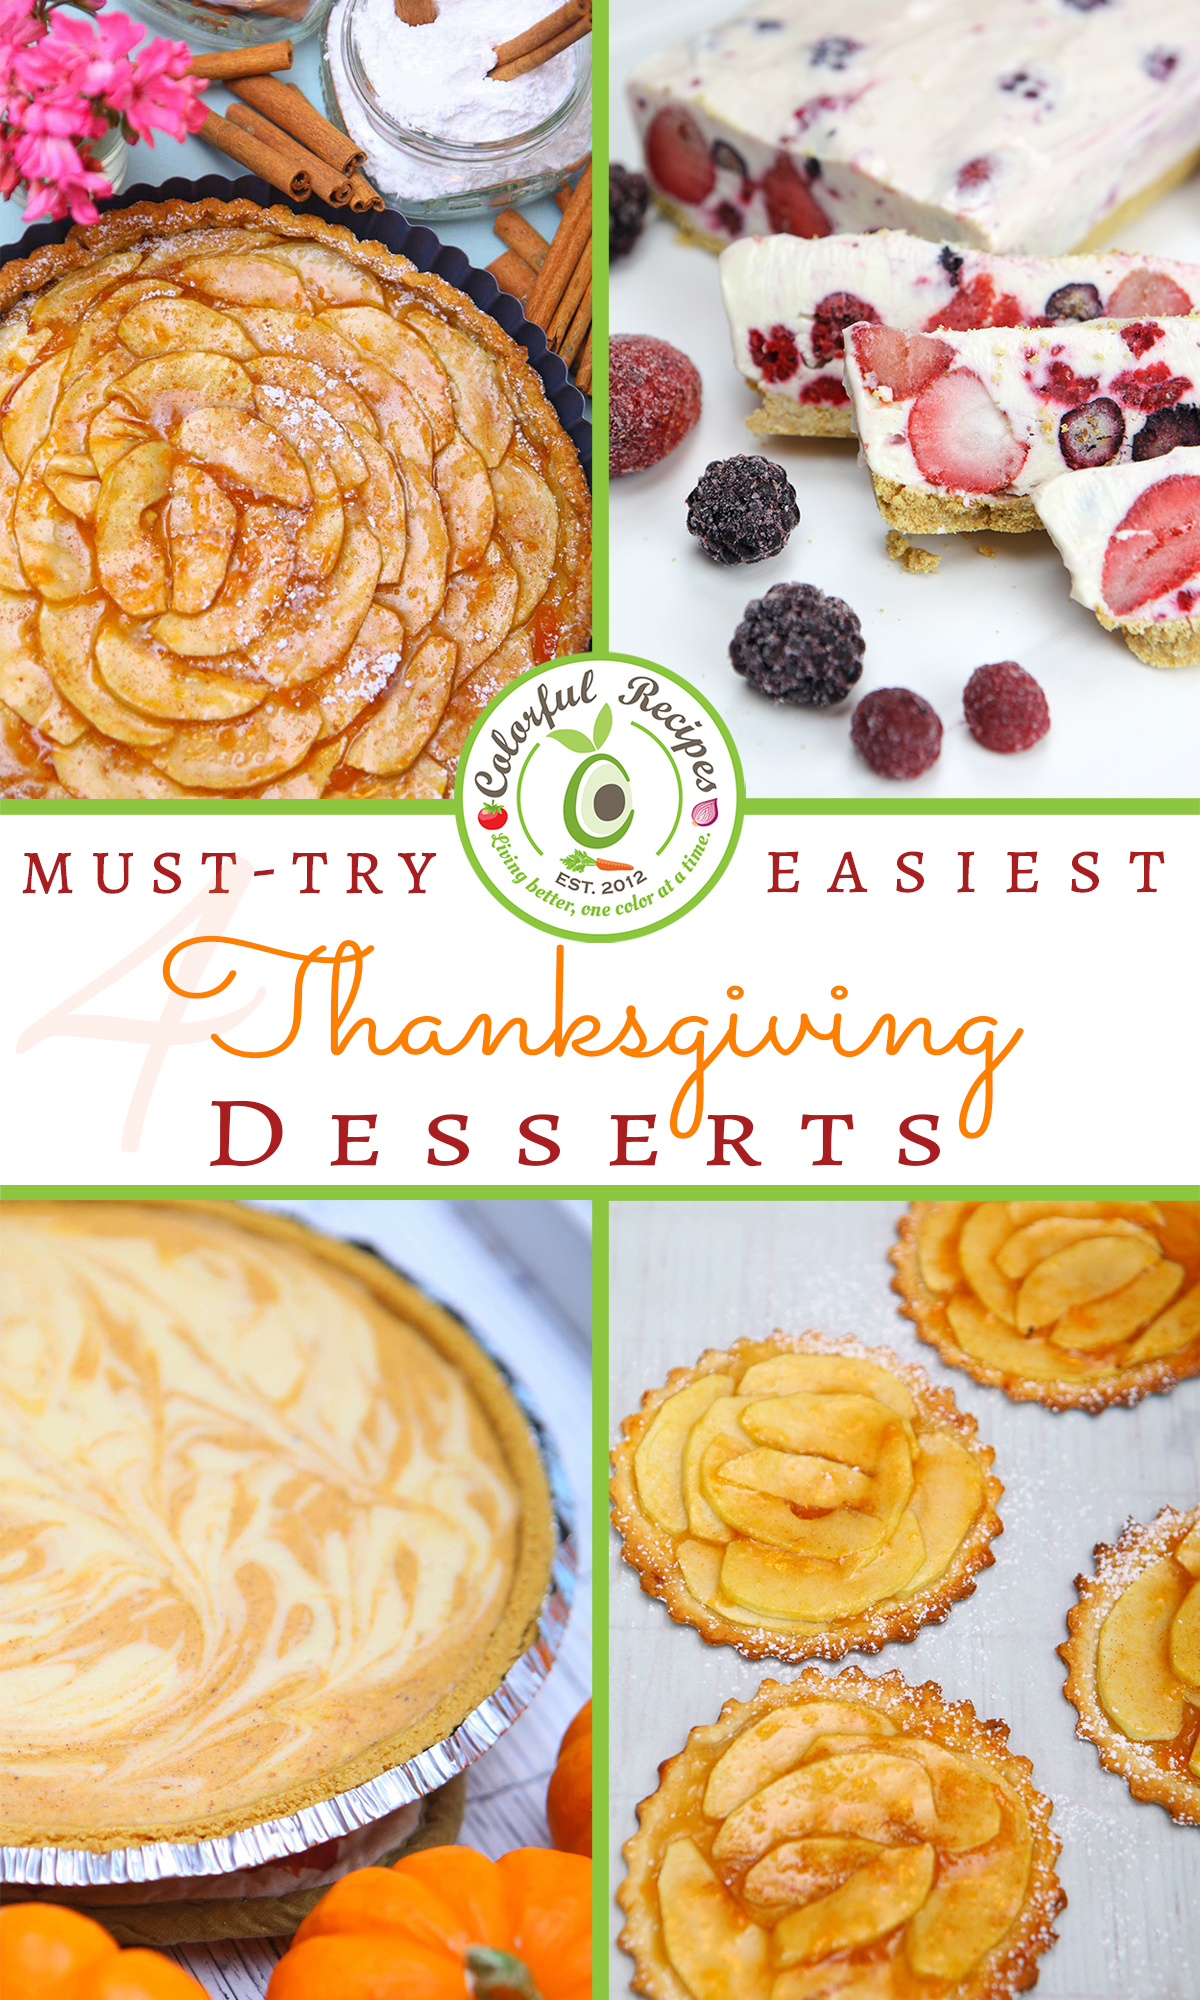 4 Must-Try Easiest Thanksgiving Desserts